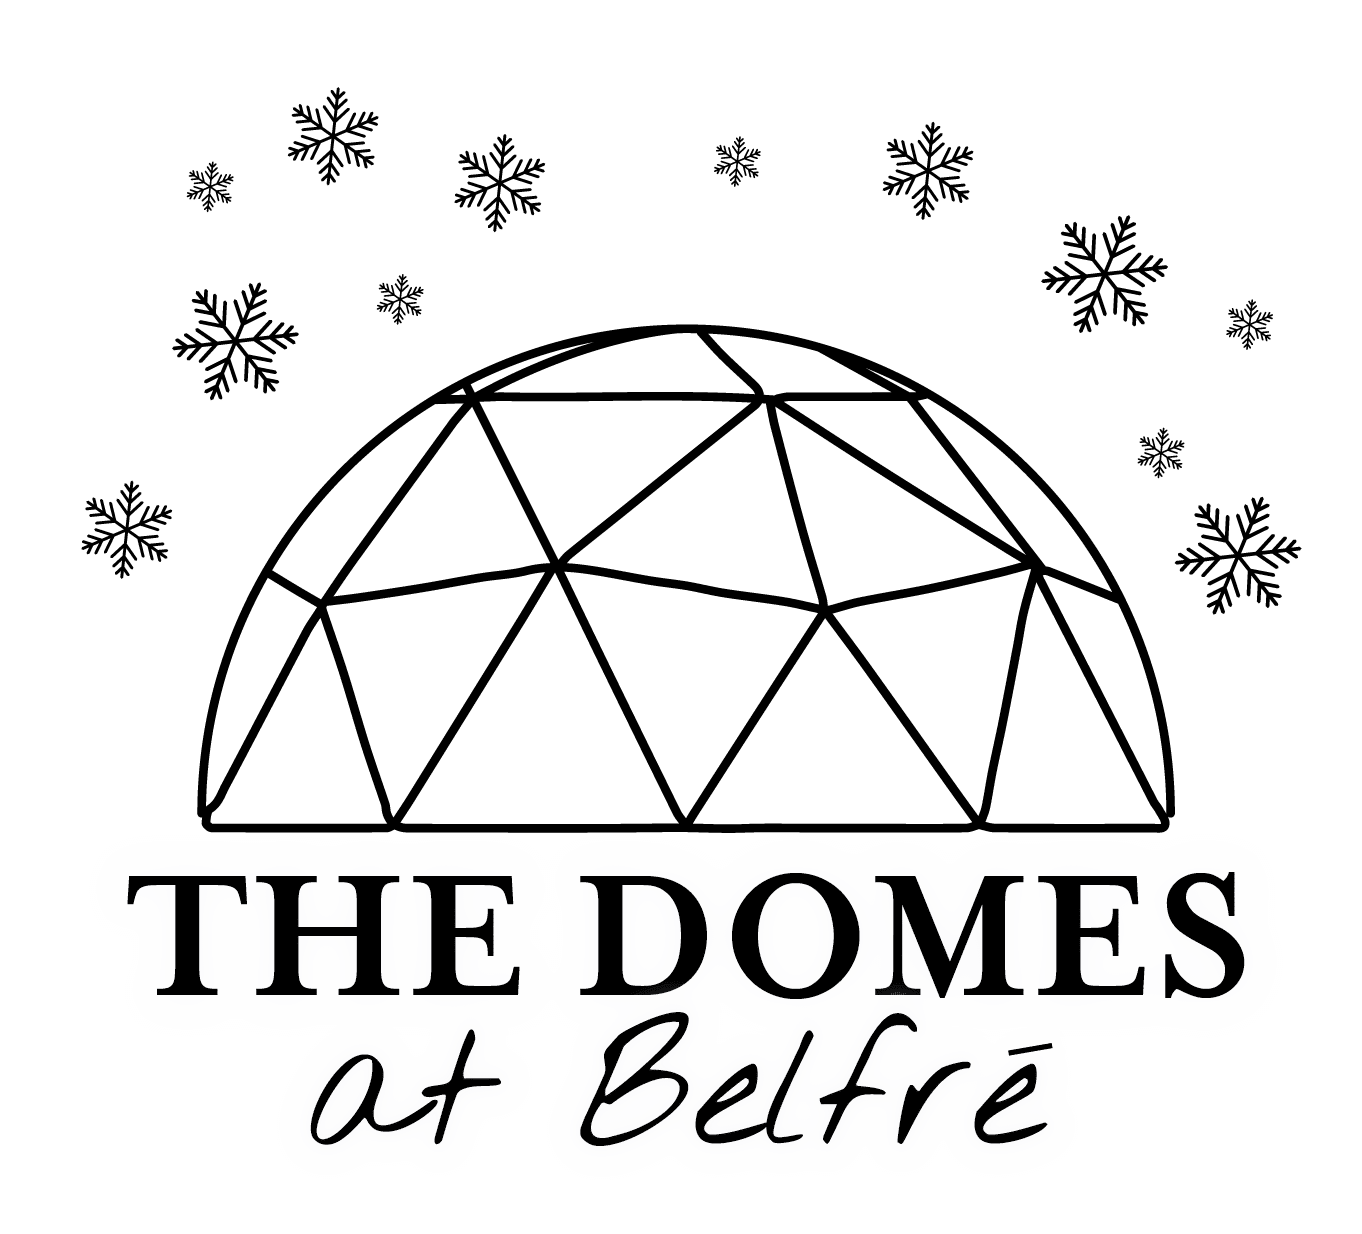 The Domes at Belfre